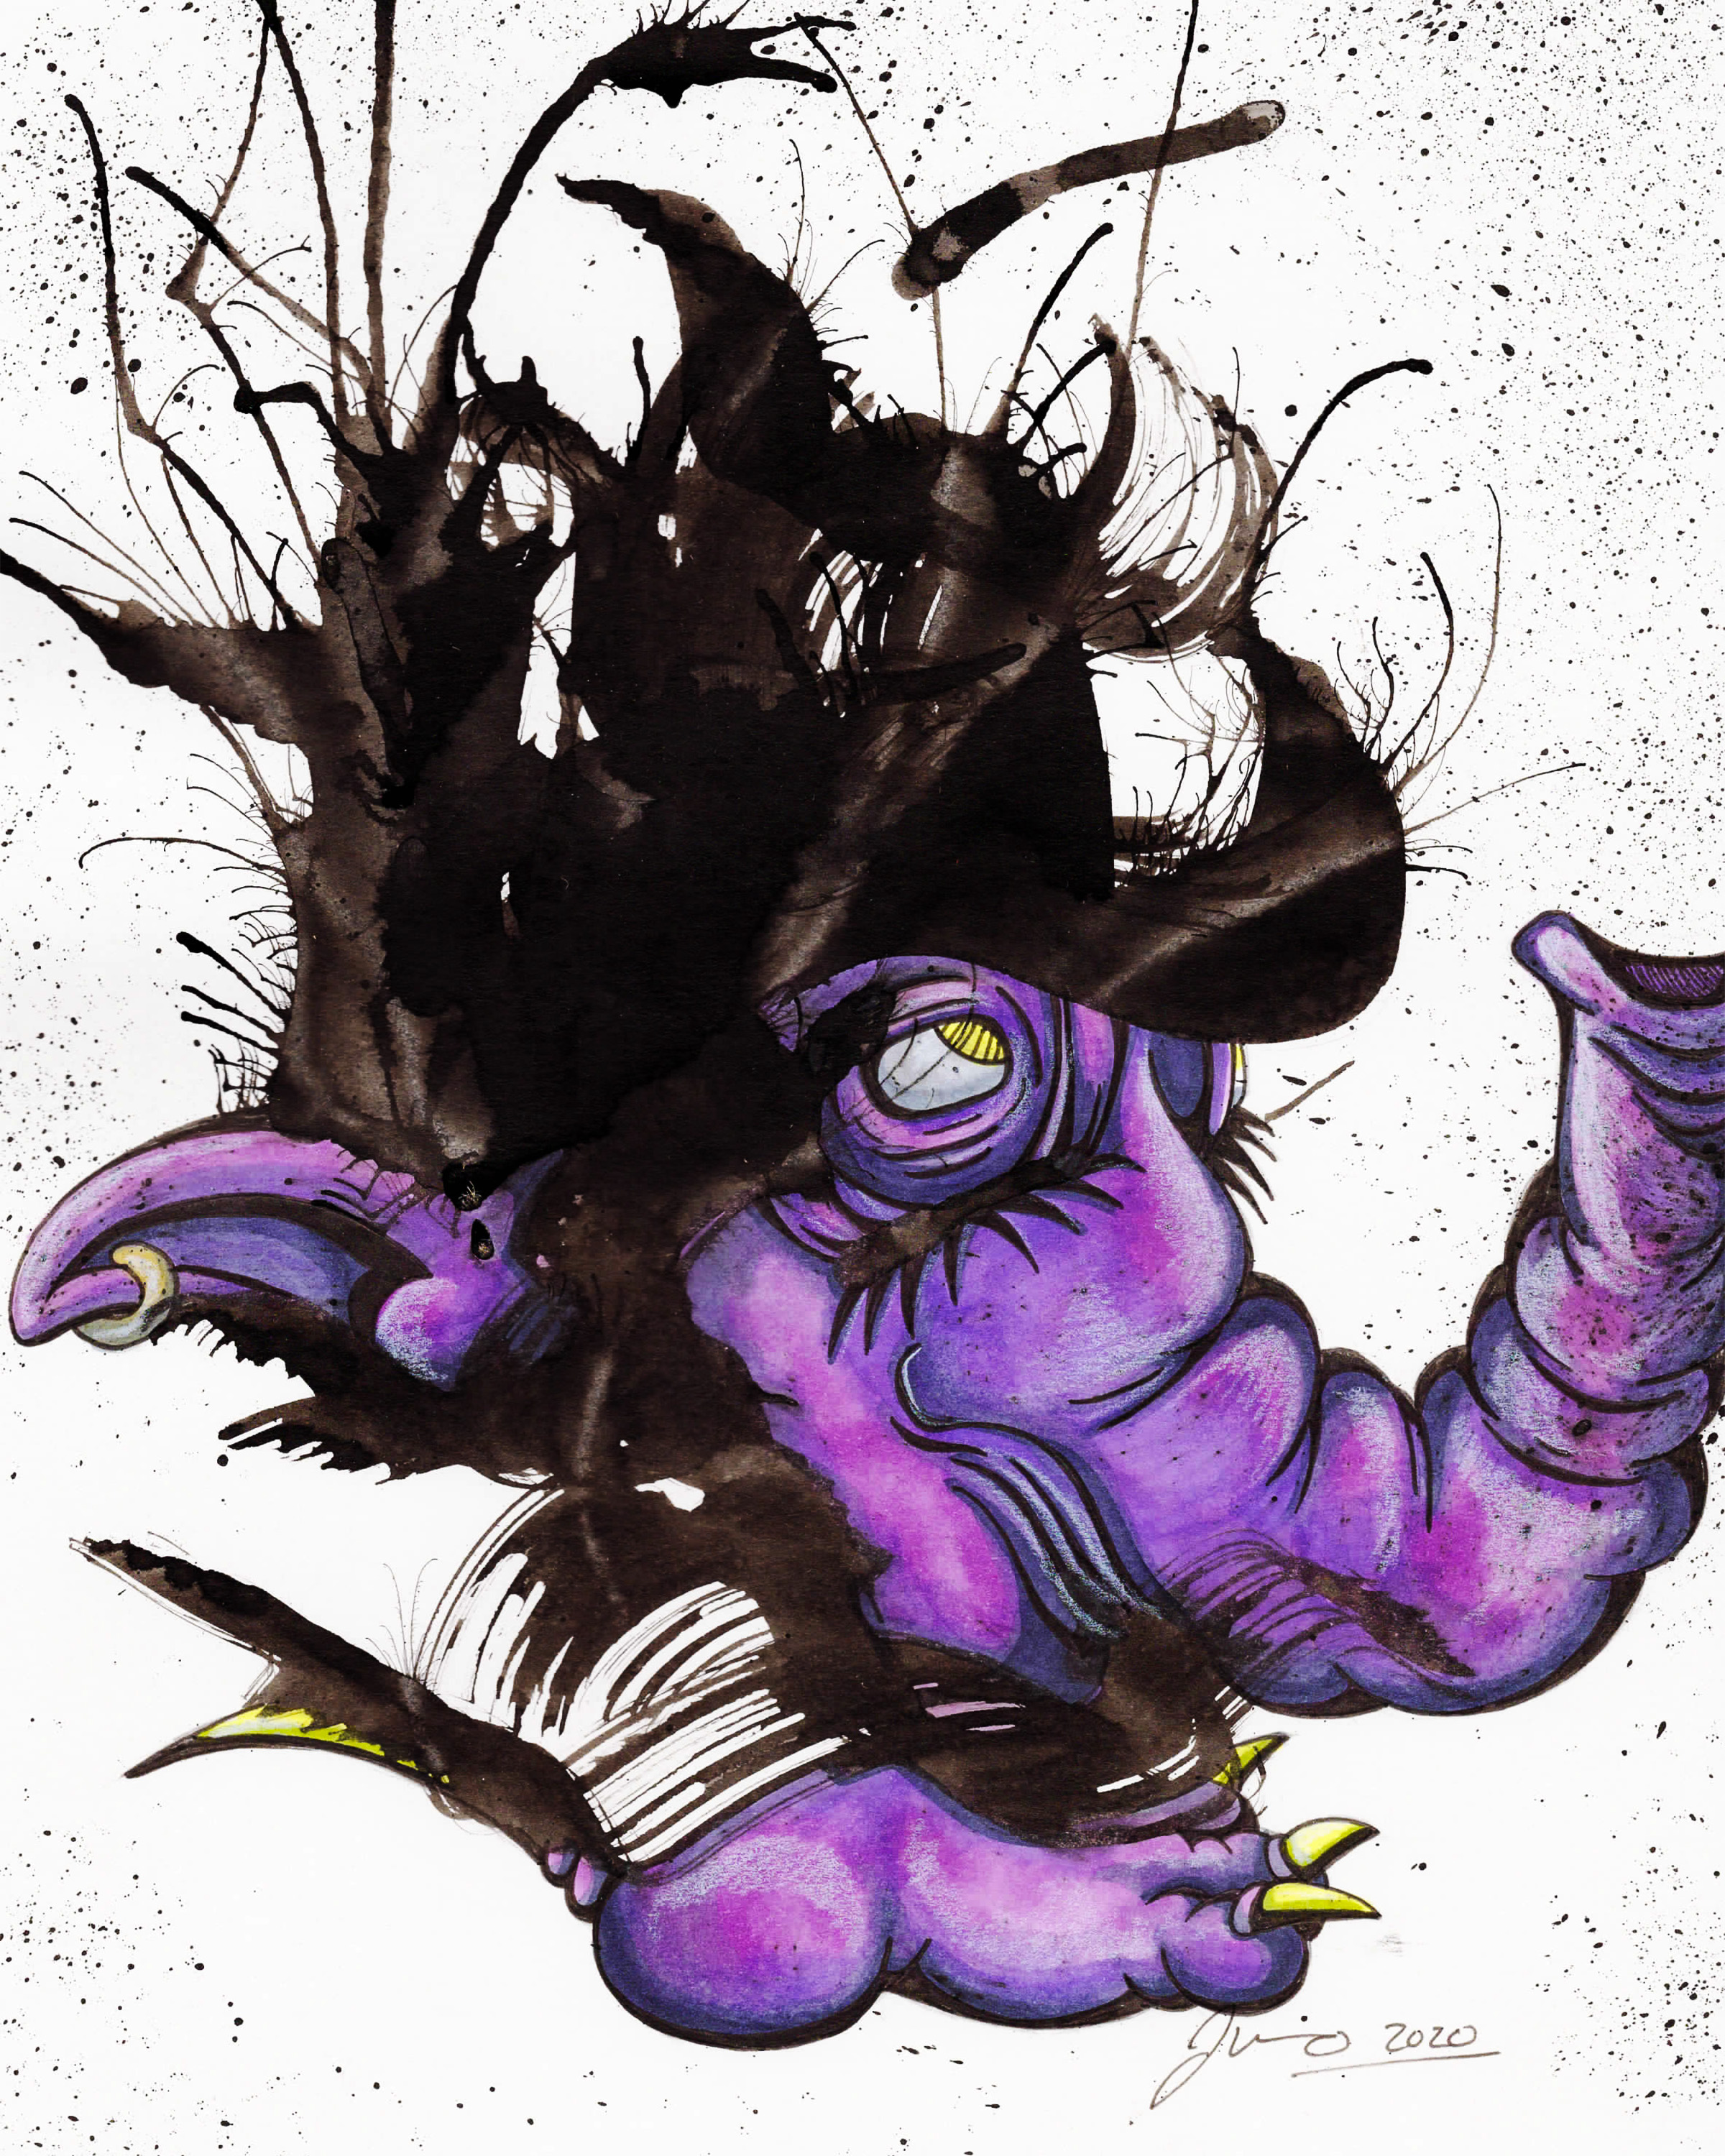 Inkblot Monster (The Larges) #2